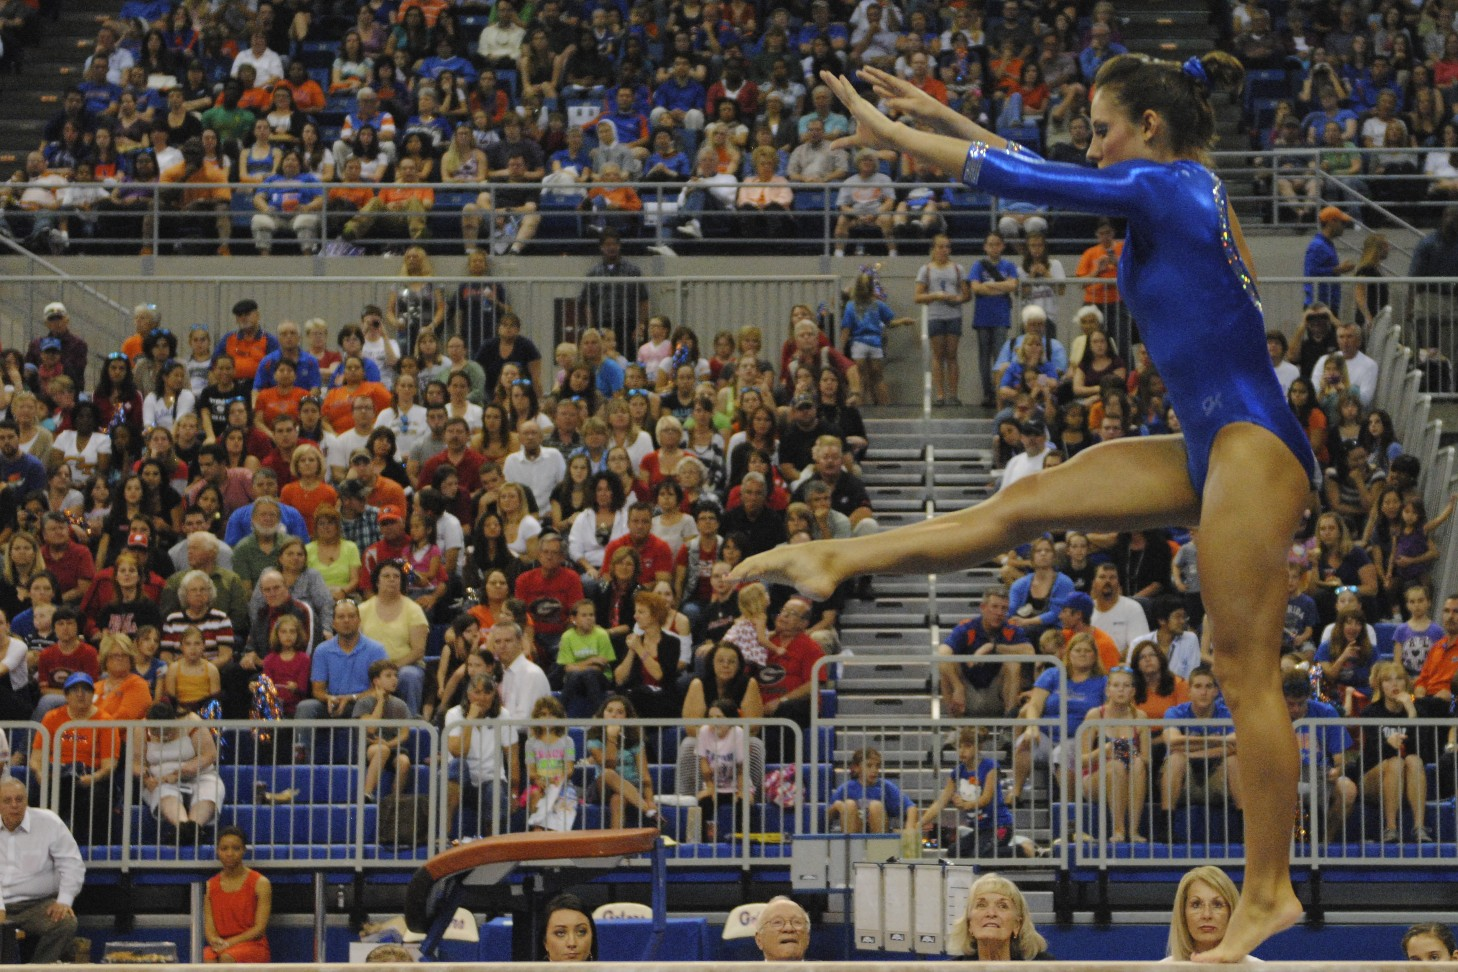 Alaina Johnson received a 9.85 for her beam routine.